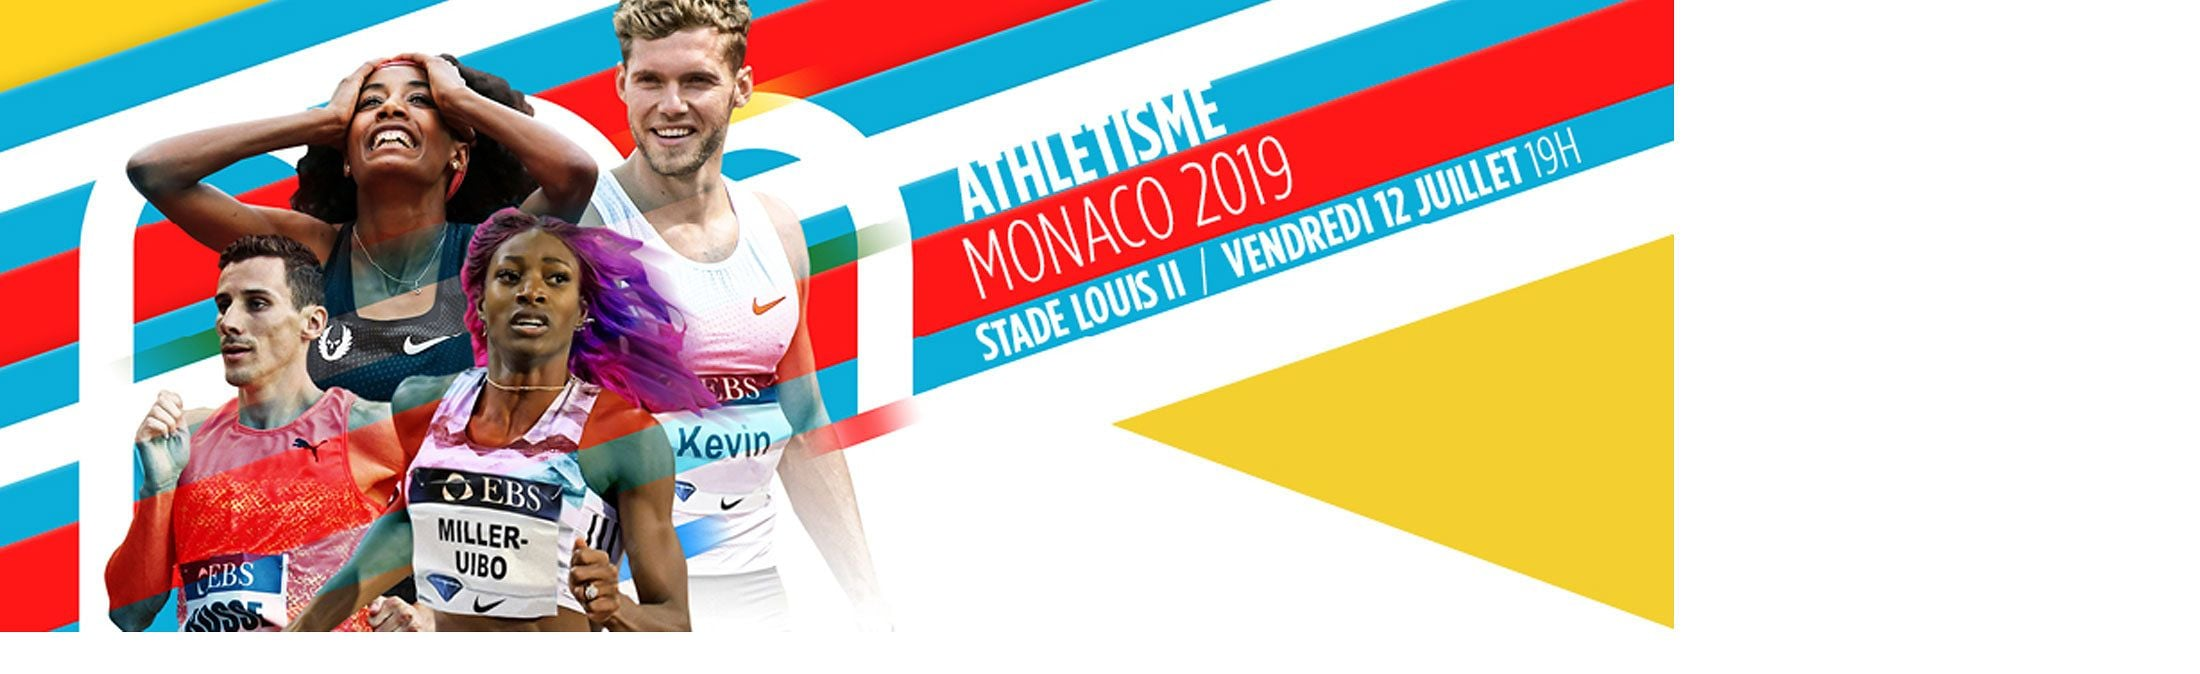 Ligue de Diamant 2019 - Meeting de Monaco Herculis